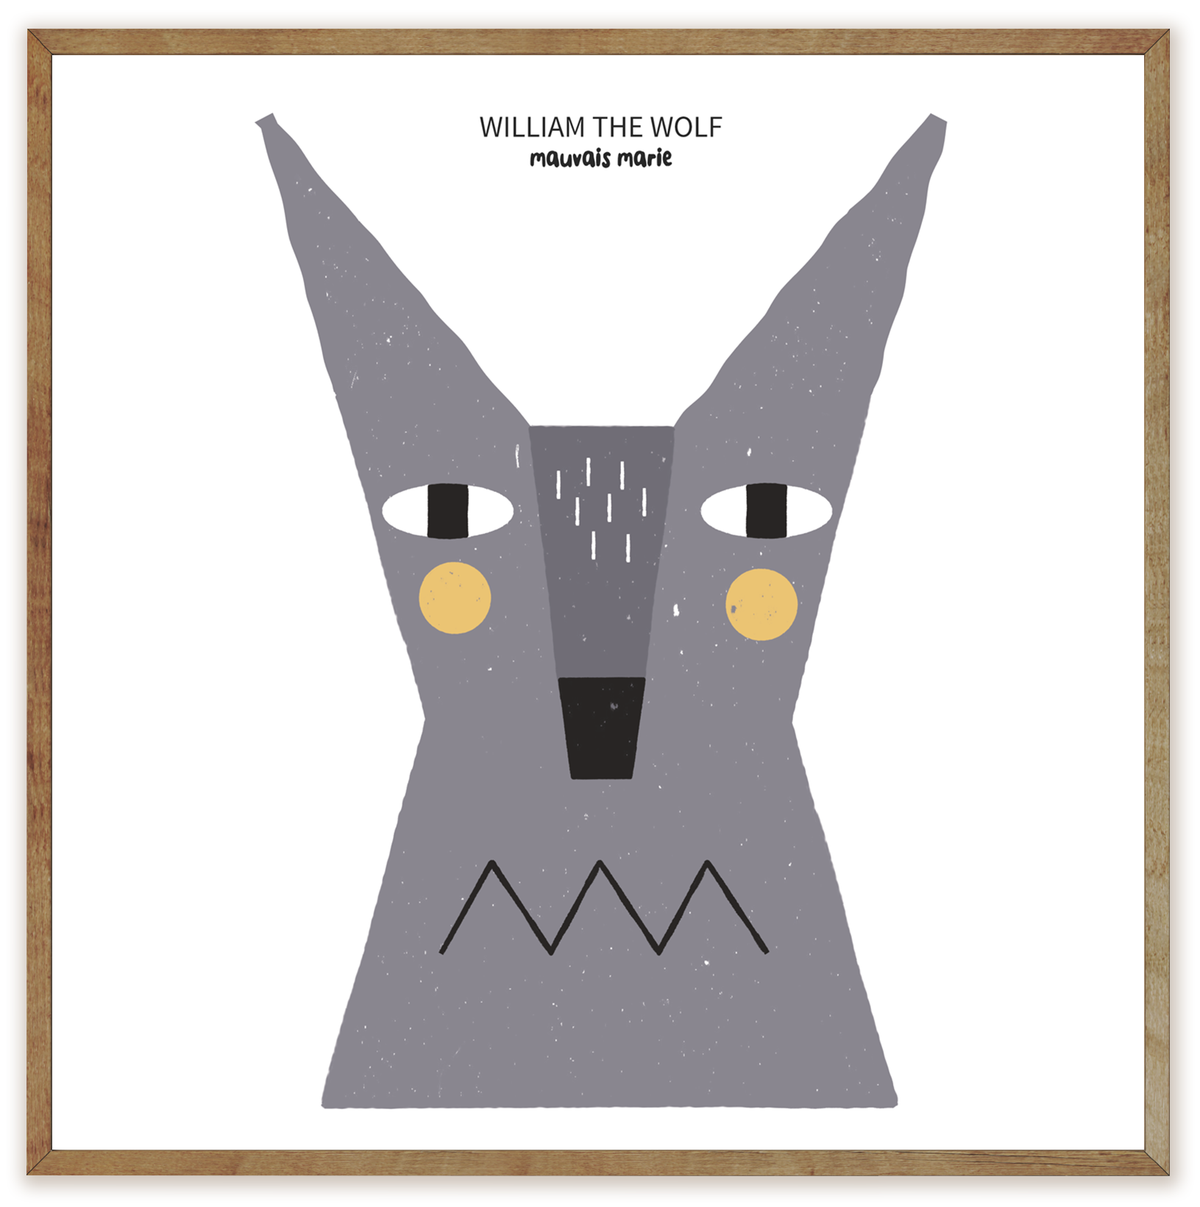 Image of William the Wolf print